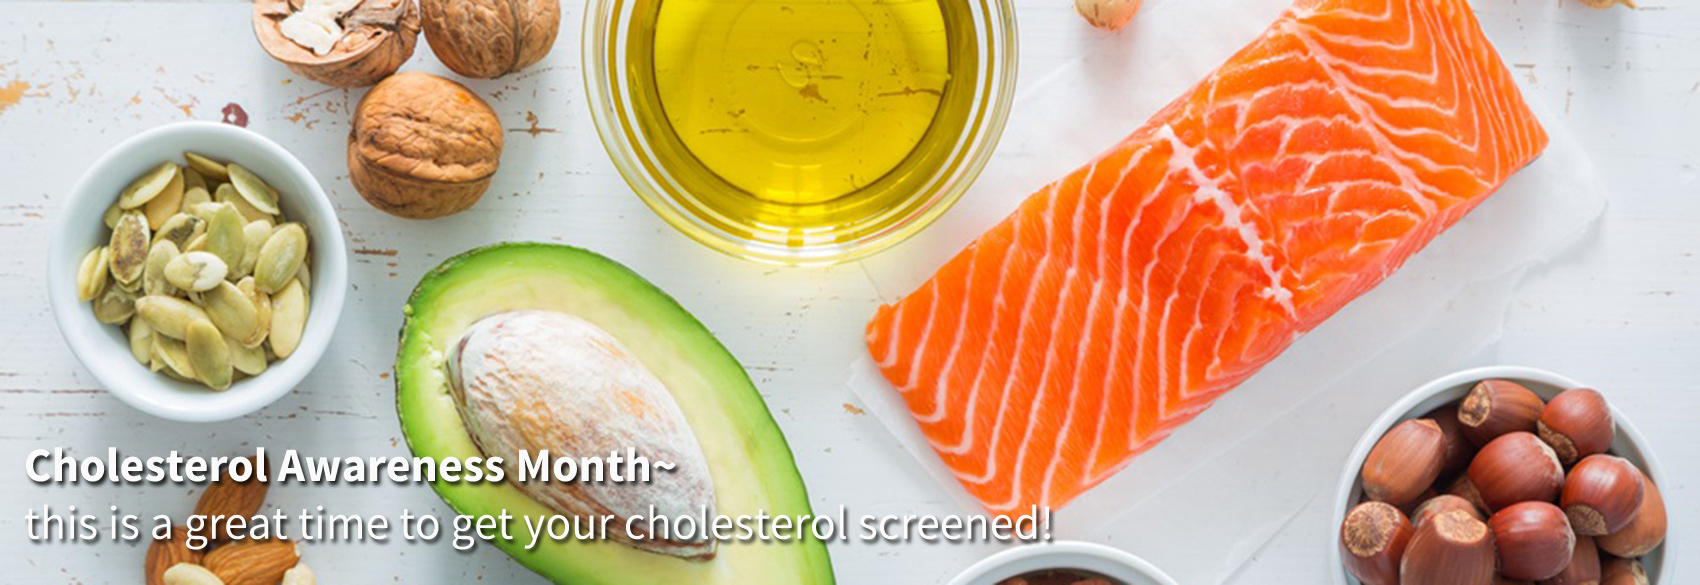 Cholesterol Awareness